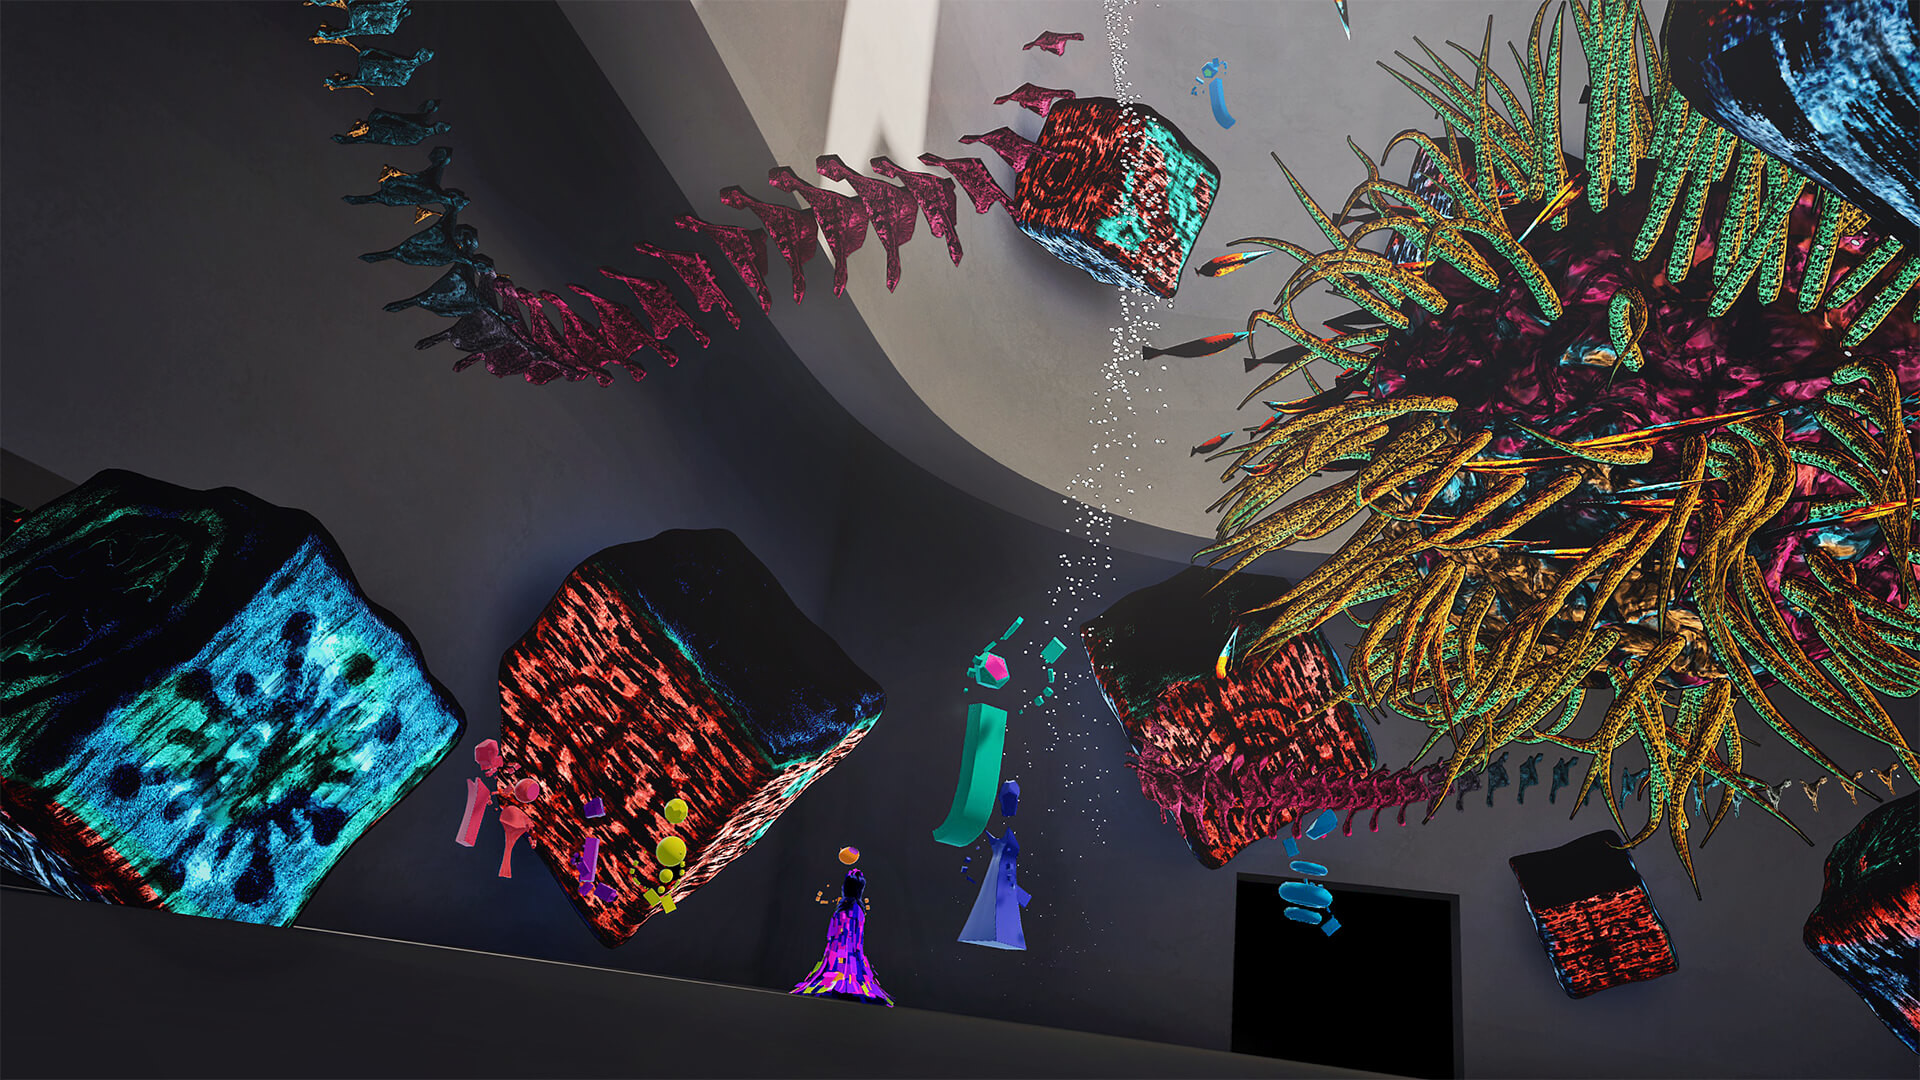 Claim Museum of Other Realities for free